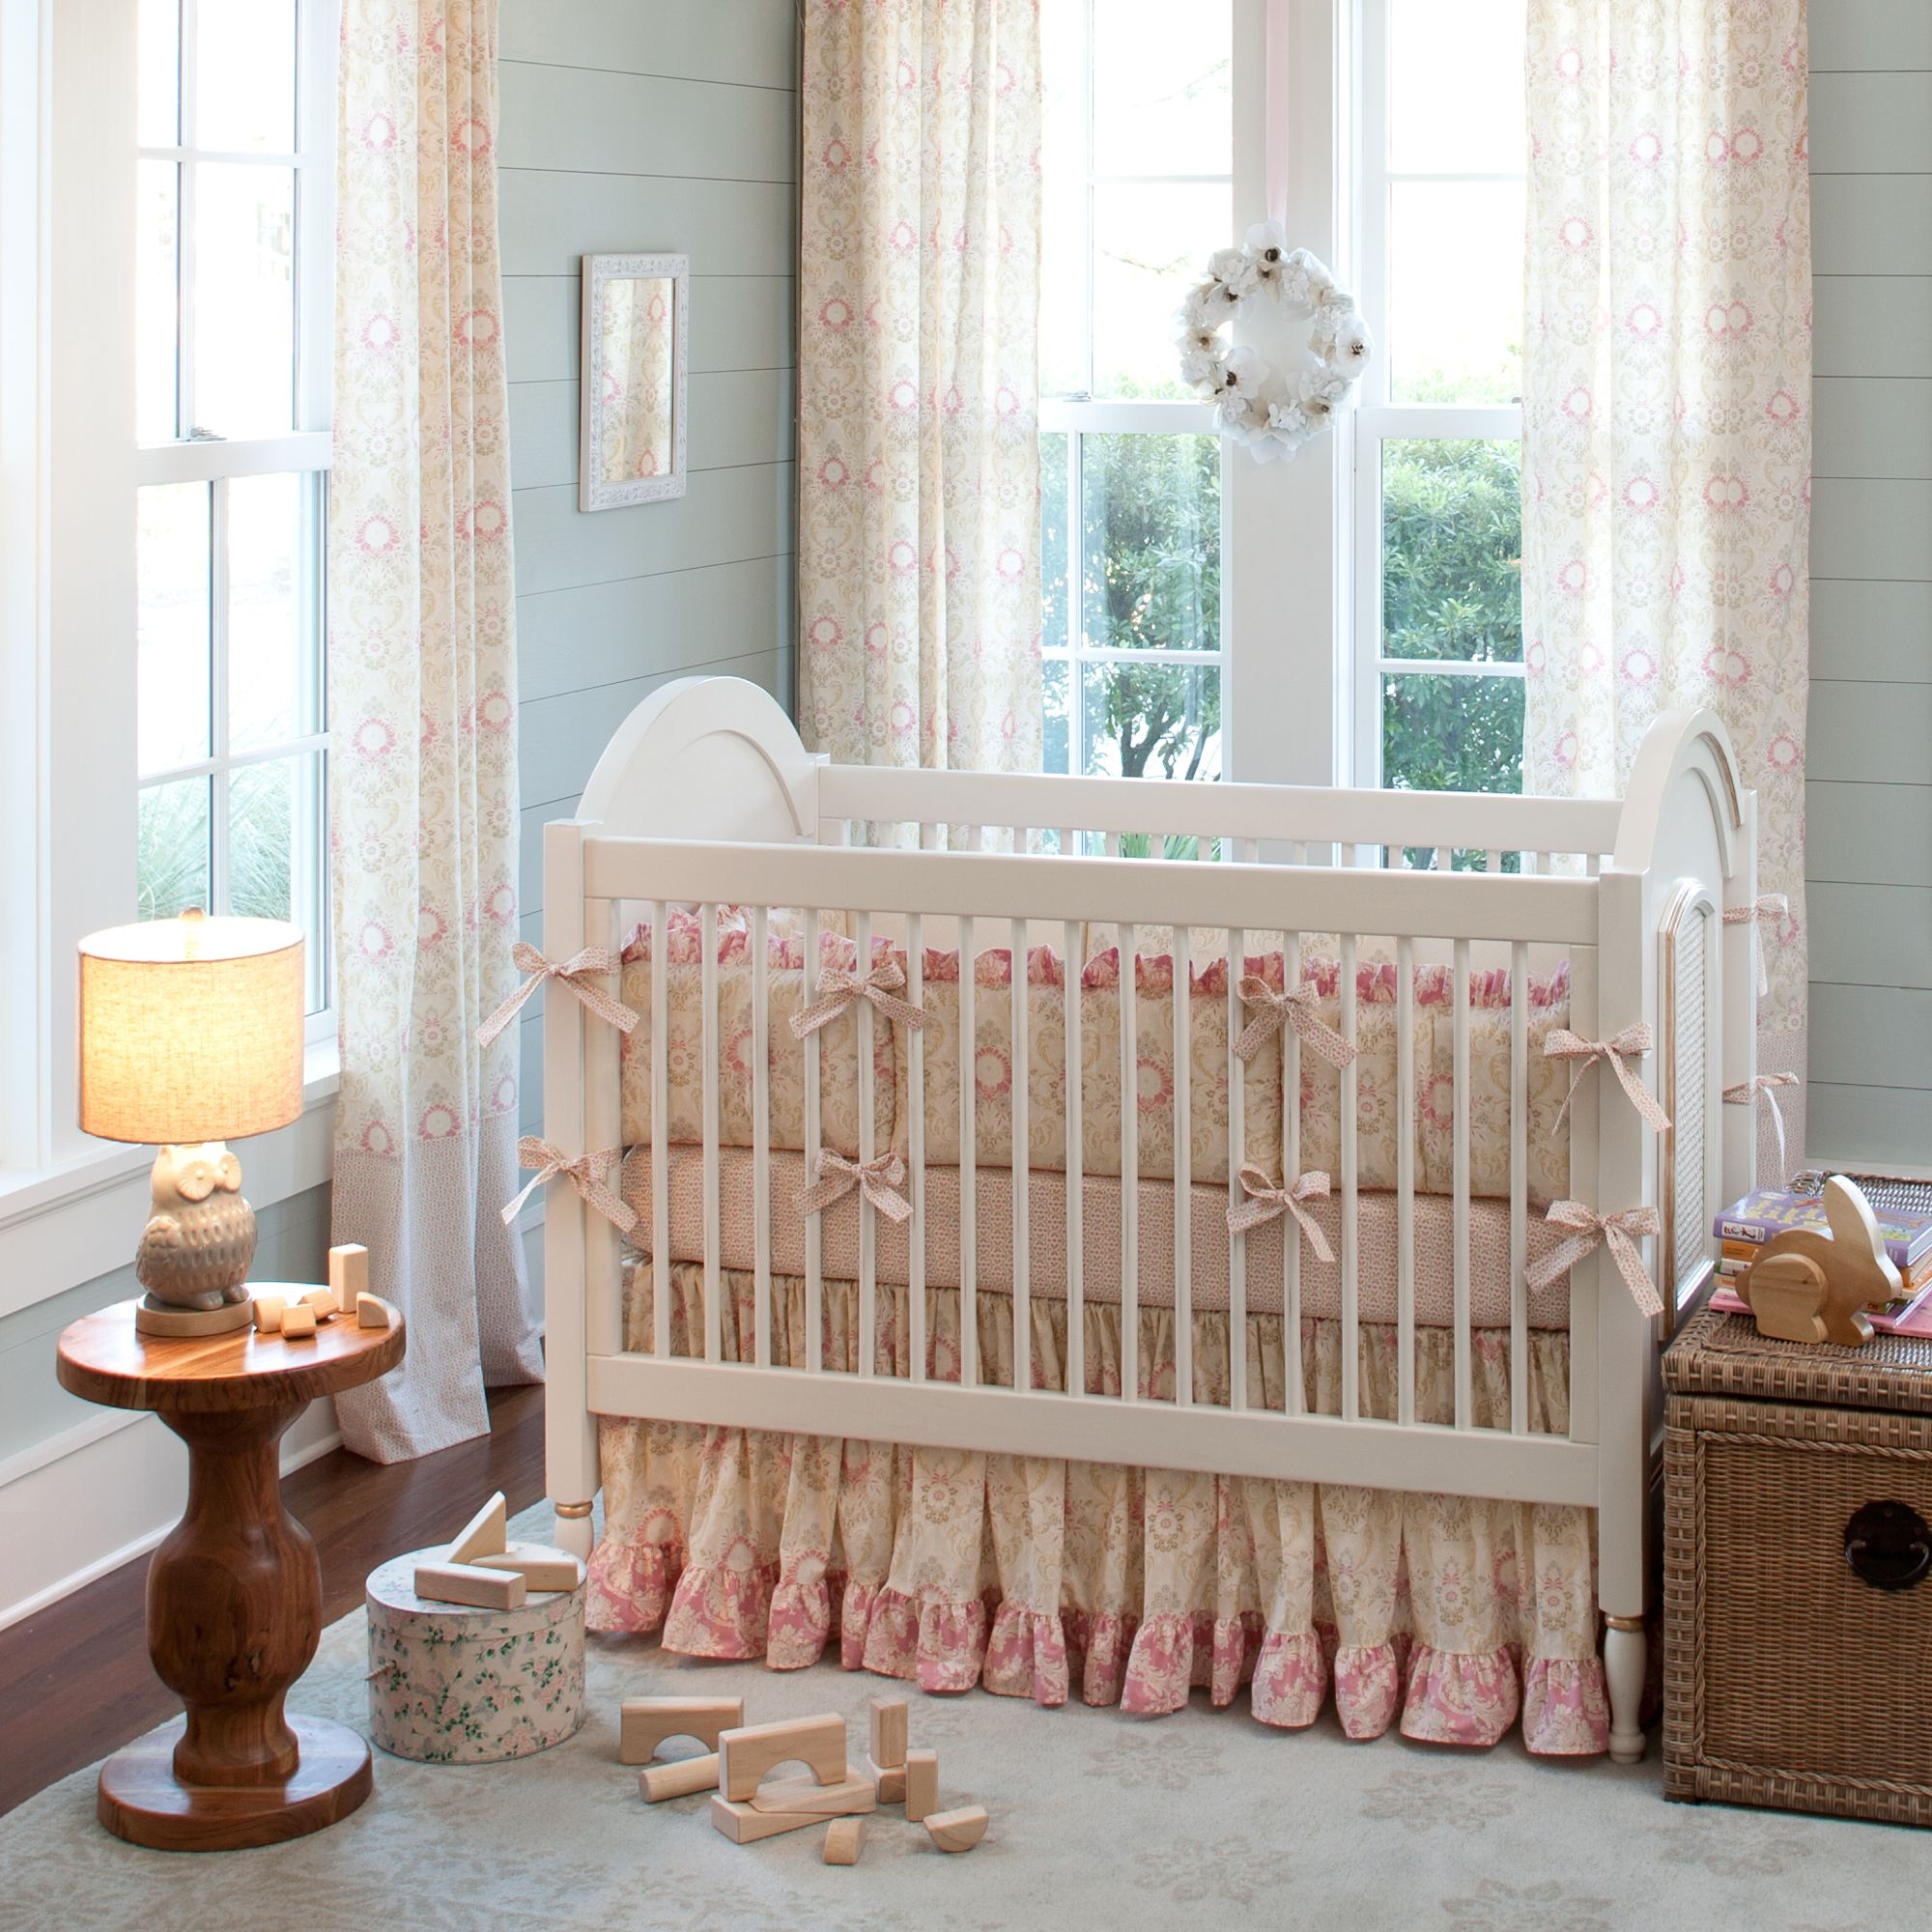 sets bedding jean girl nursery beds sale set of size basket cot moses bumper carousel crib cribs full cream anastasia baby wayfair comforter glenna for cheap